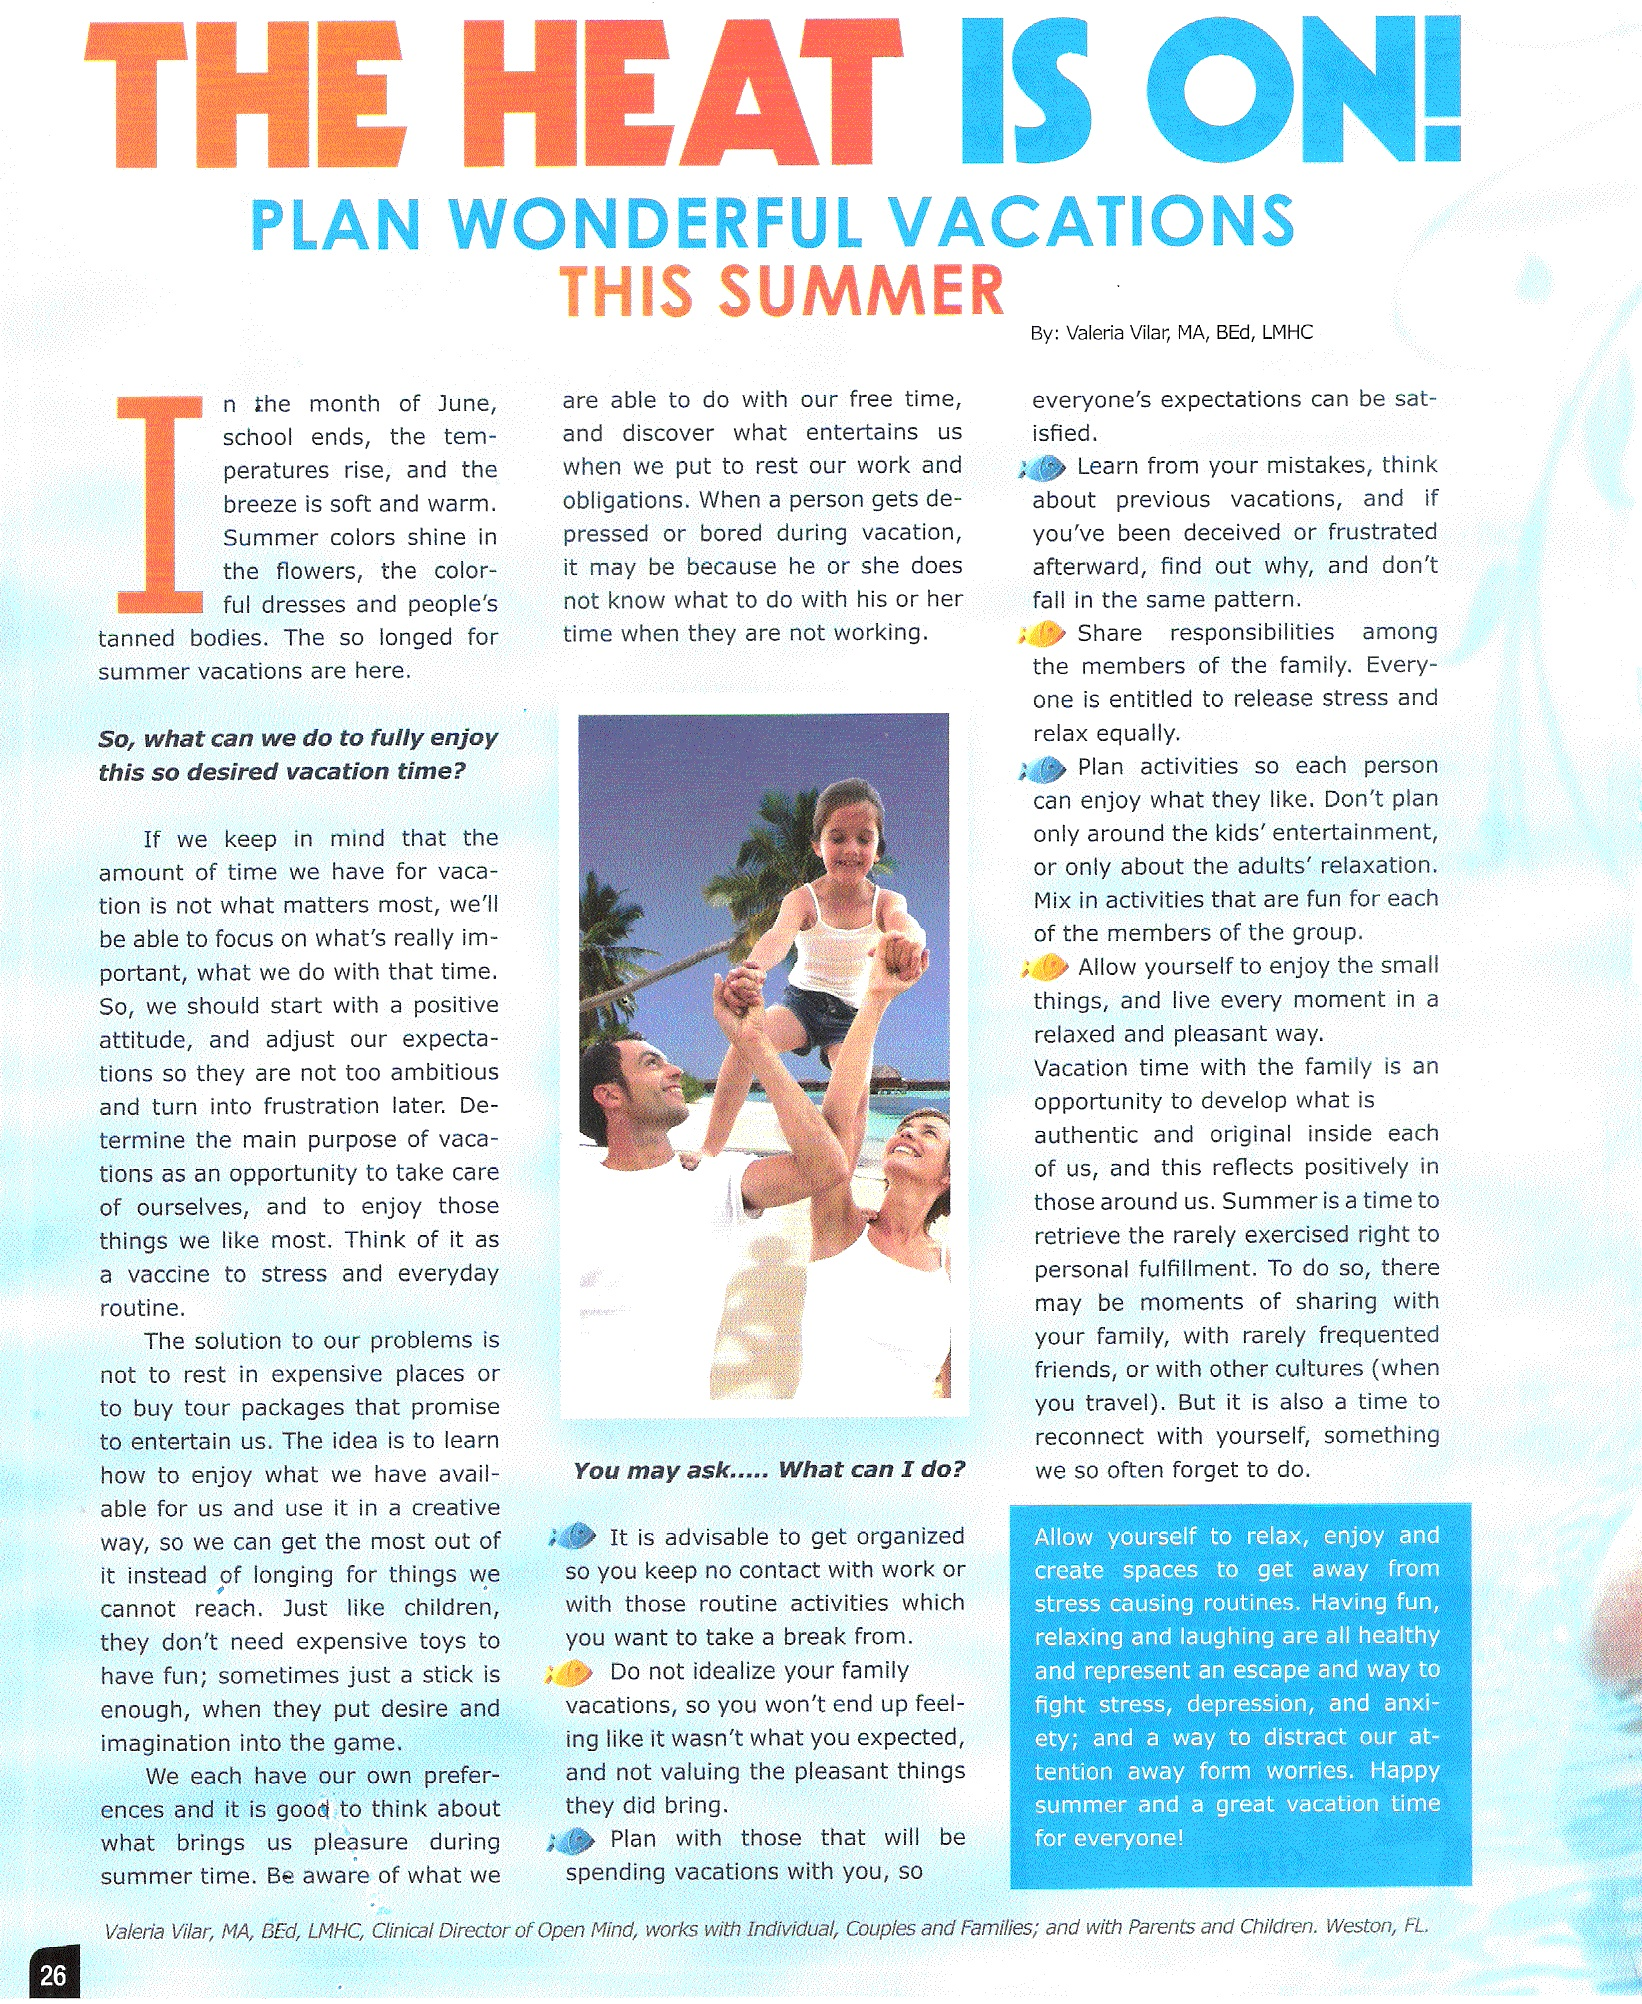 The heat is on! Plan wonderful vacations this summer